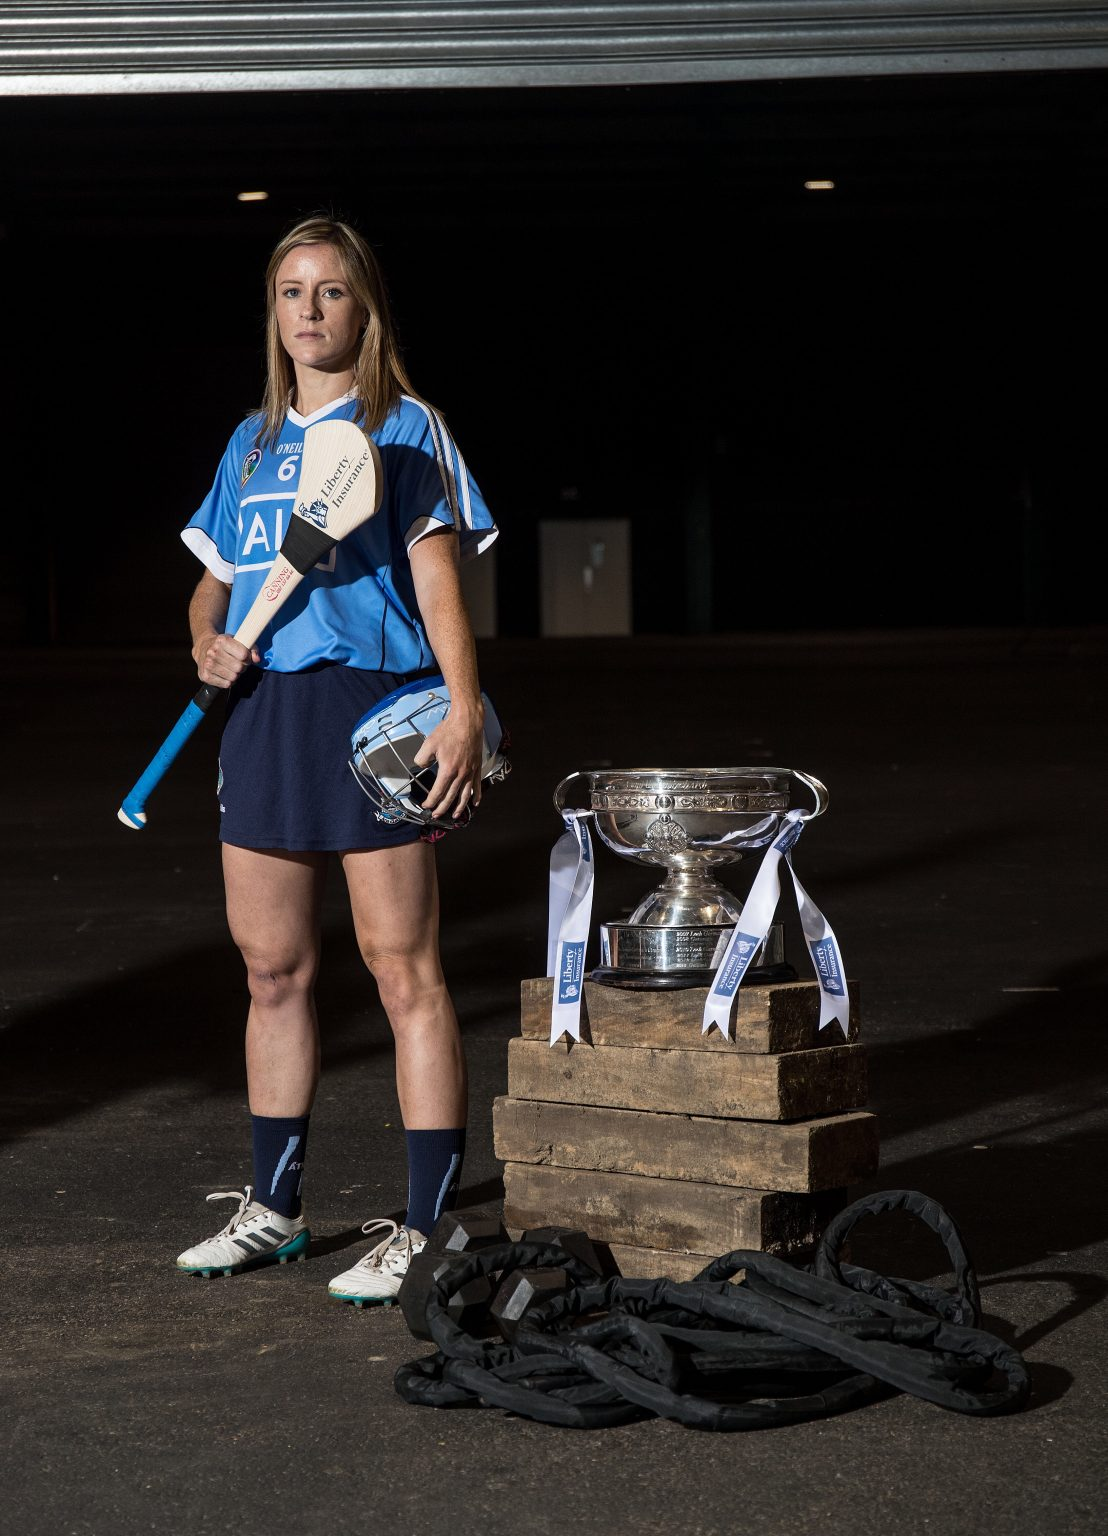 Dublin Camogie player Laura Twomey in a sky blue jersey, holding a hurl in her right hand and helmet in her left hand pictured with the O'Duffy Cup at the launch of the All Ireland Camogie Championhips.